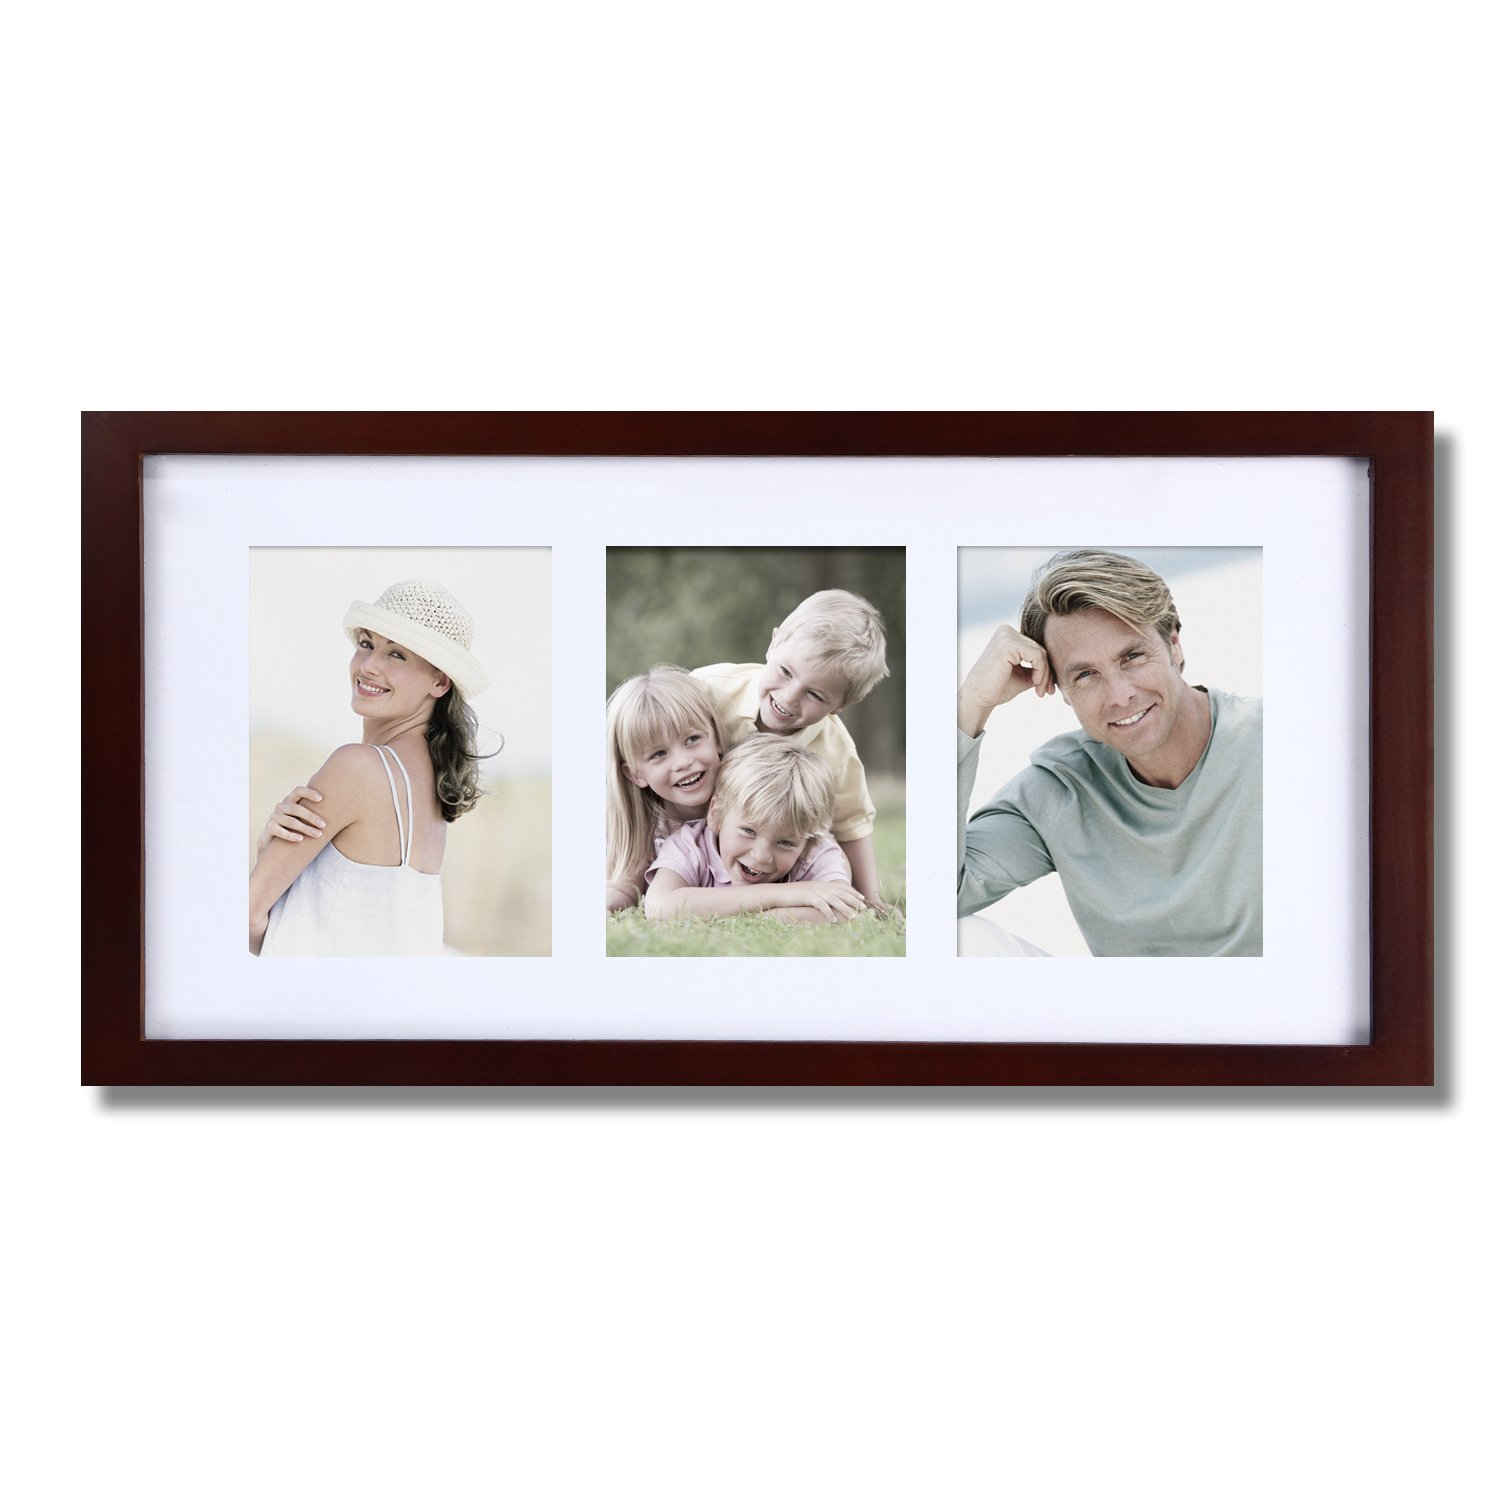 Adeco PF0284 3-Opening Walnut Matted Wooden Wall Hanging Collage Picture Photo Frames - Home Decor Wall Art, Holds Three 4x6 Photos, Great Gift, Walnut